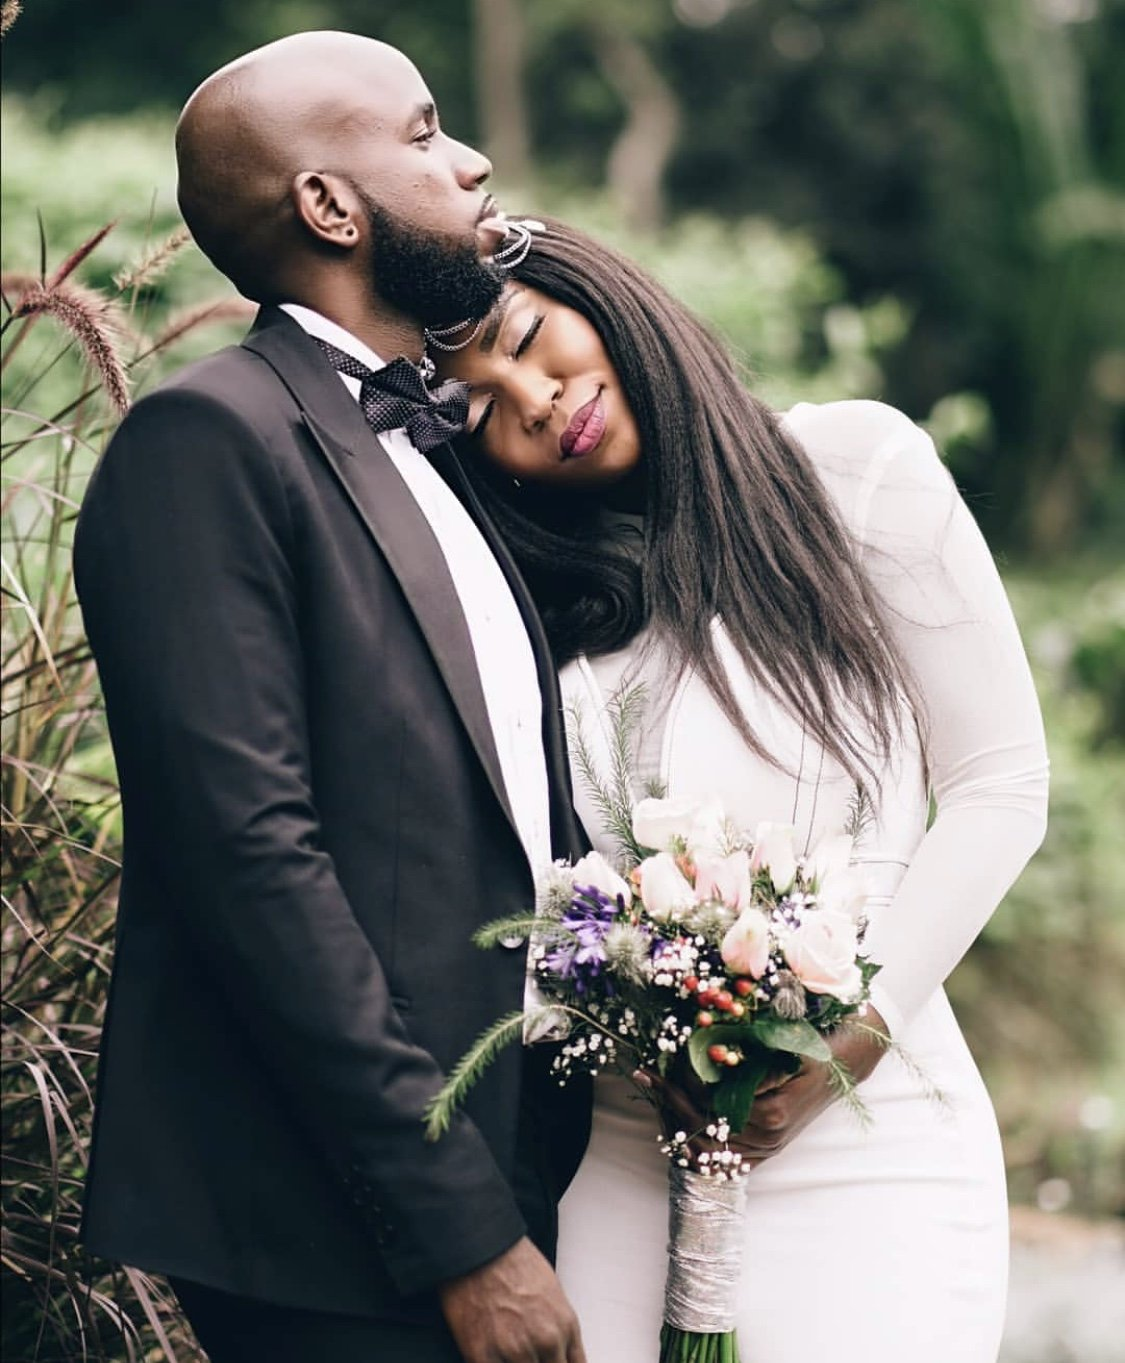 Singer Dela weds the love of her life in a low key wedding (Photos)